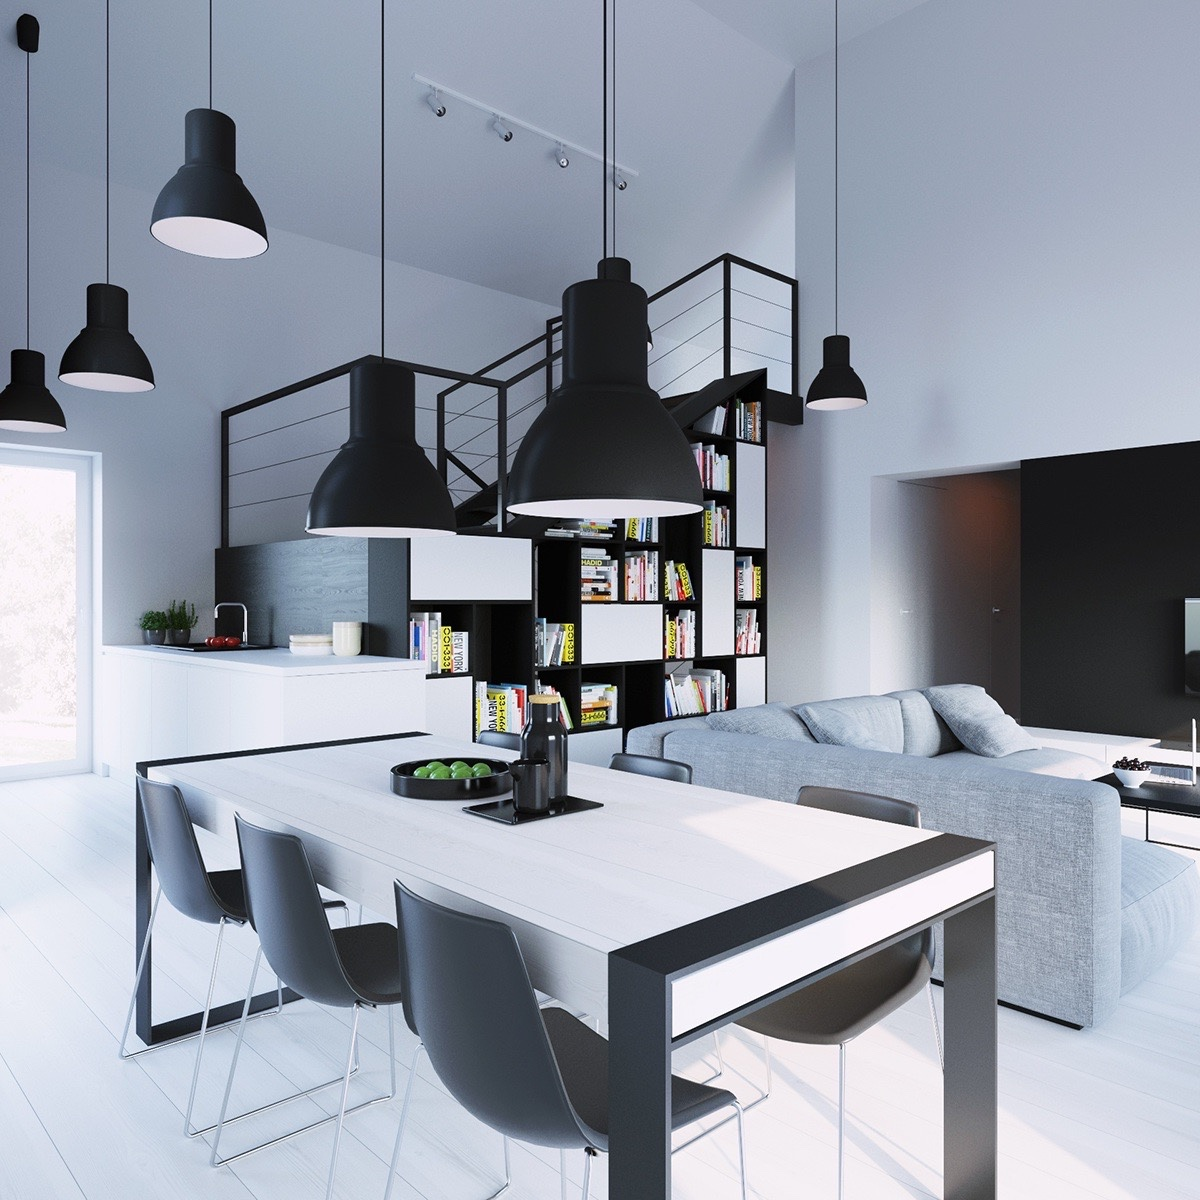 Black And White Modern Dining Room - Dining rooms that mix classic and ultra modern decor